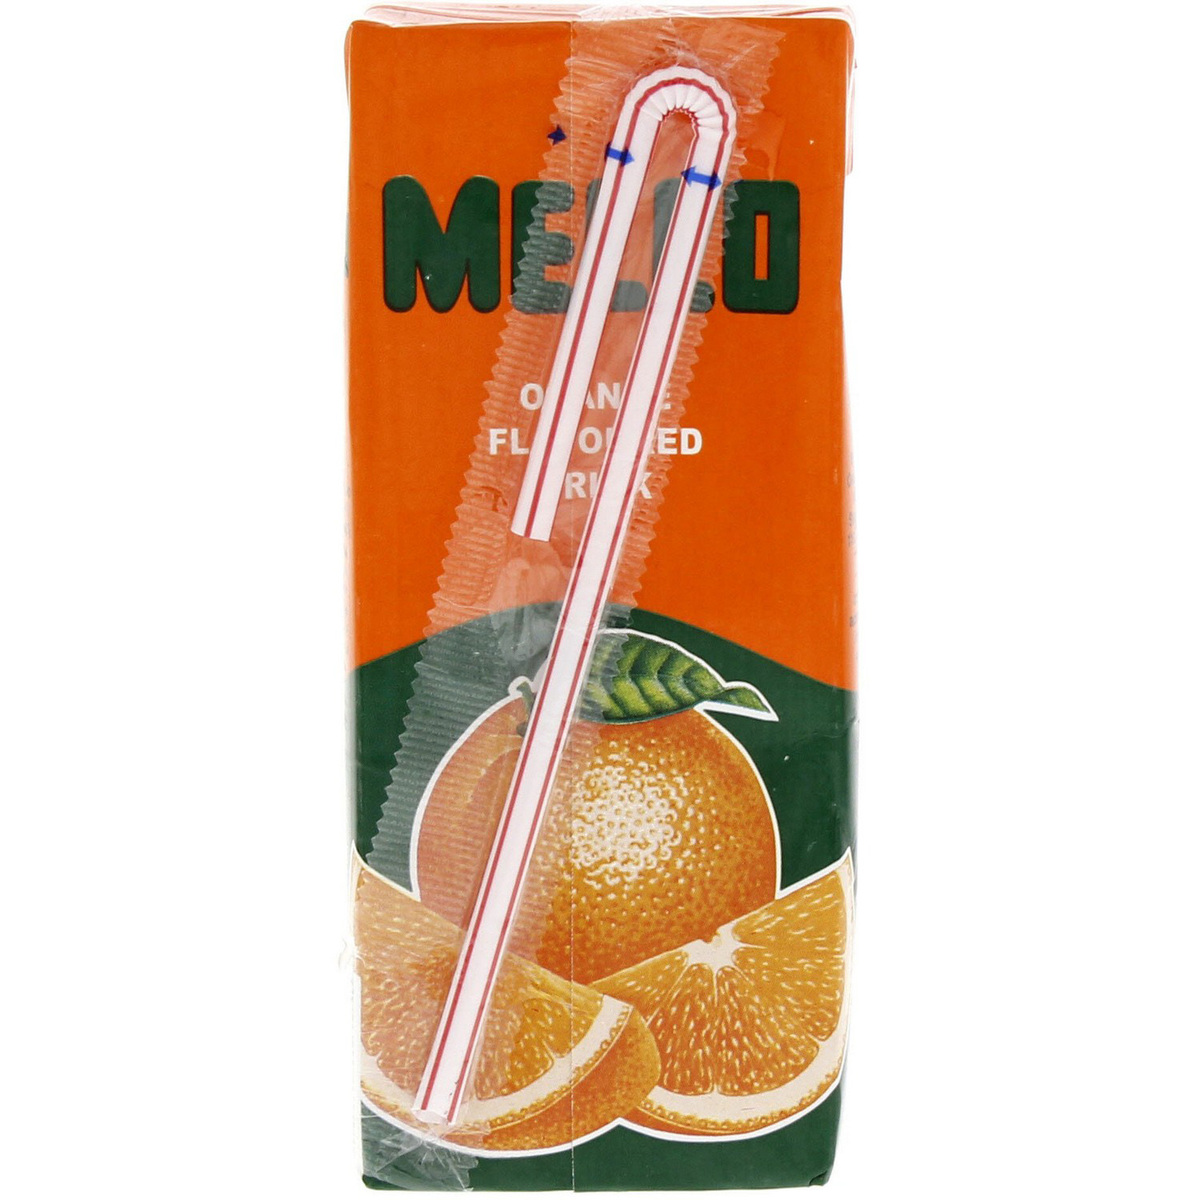 Melco Orange Flavoured Drink 250ml x 27 Pieces